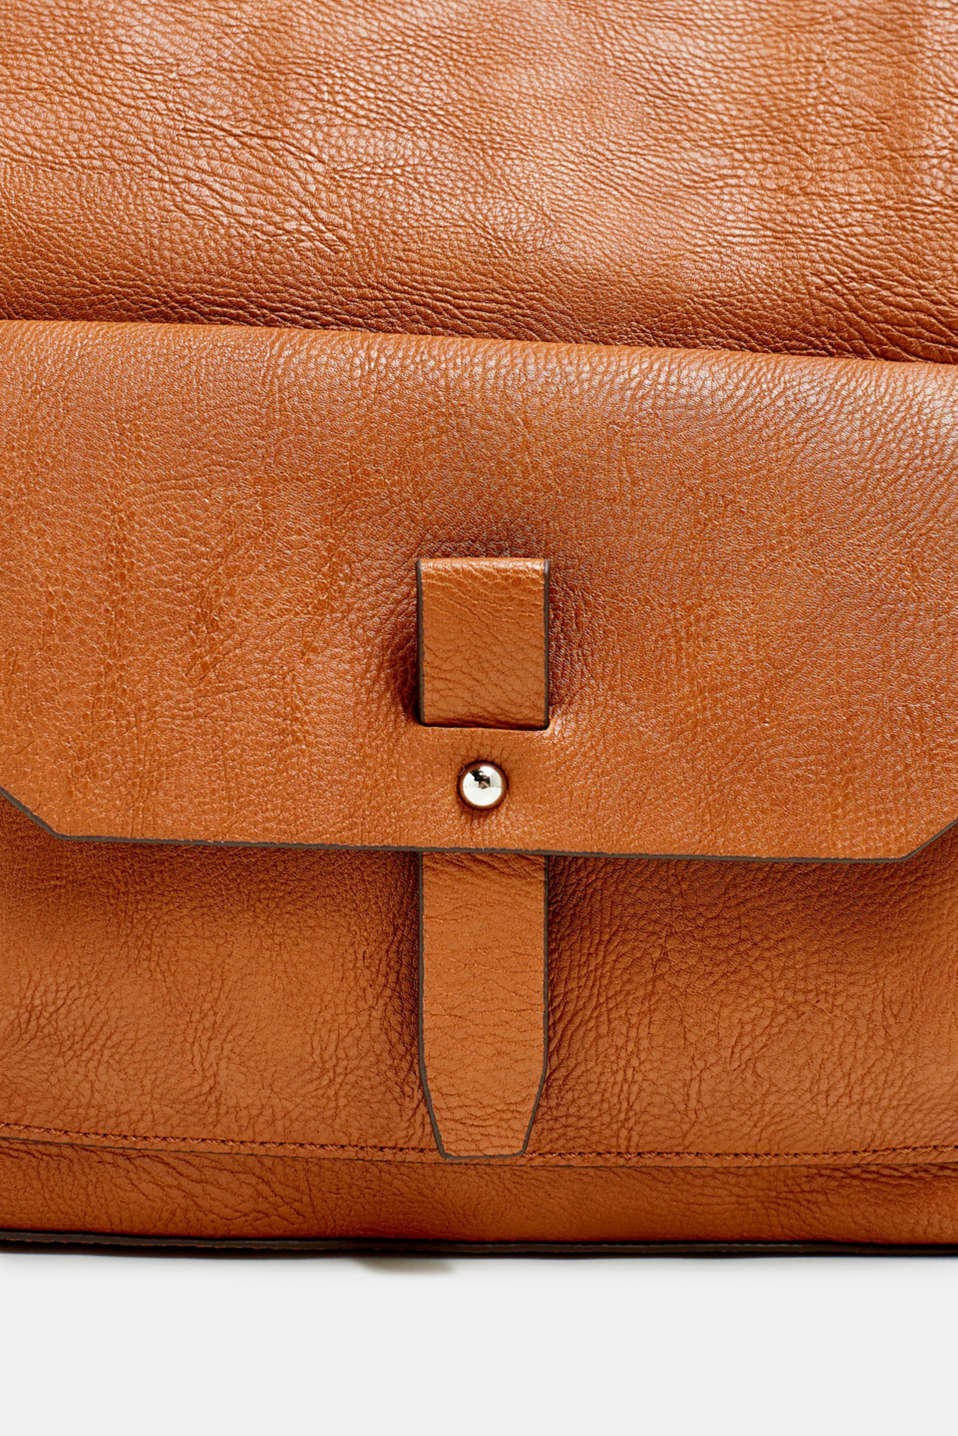 Flapover bag in faux leather, RUST BROWN, detail image number 3